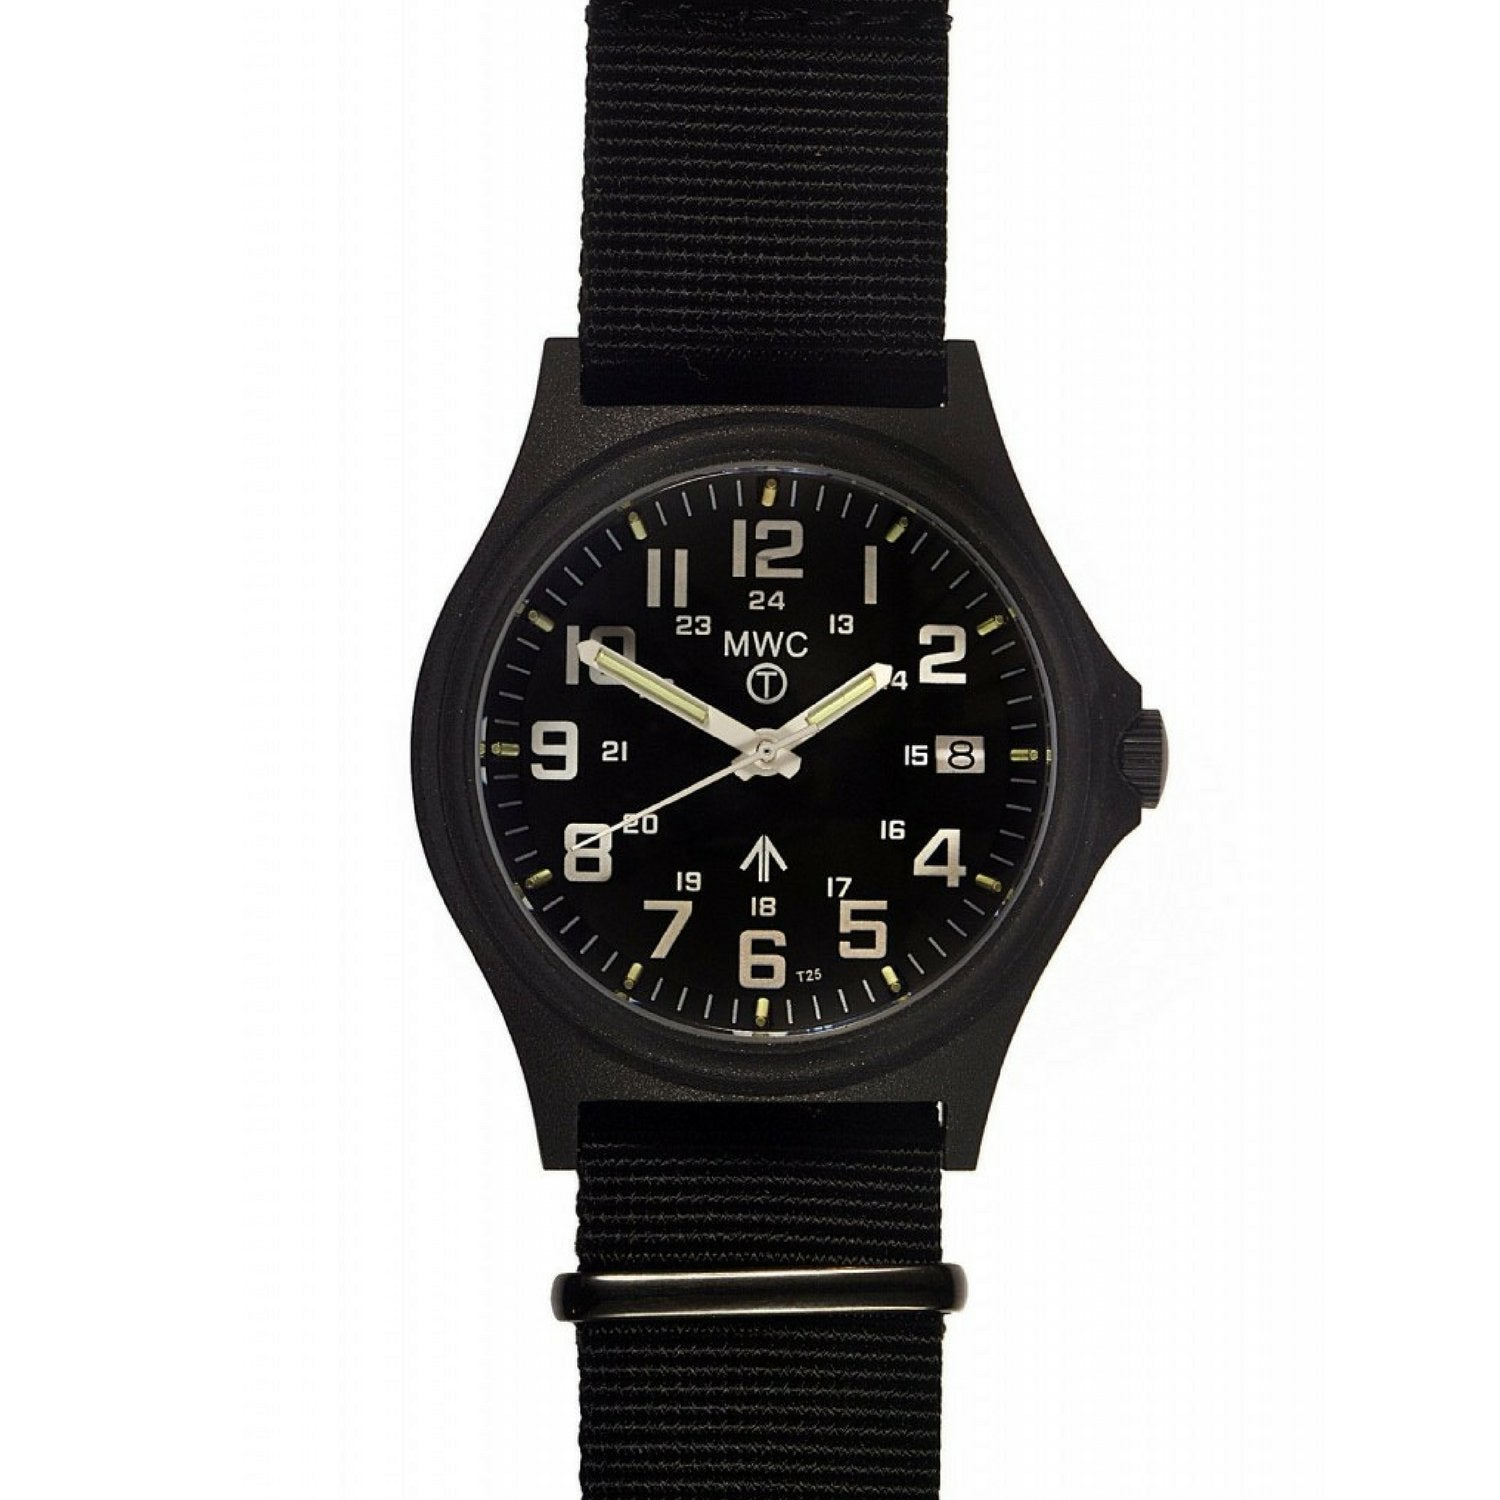 sjx tudor pvd dark black watches in the introducing bay